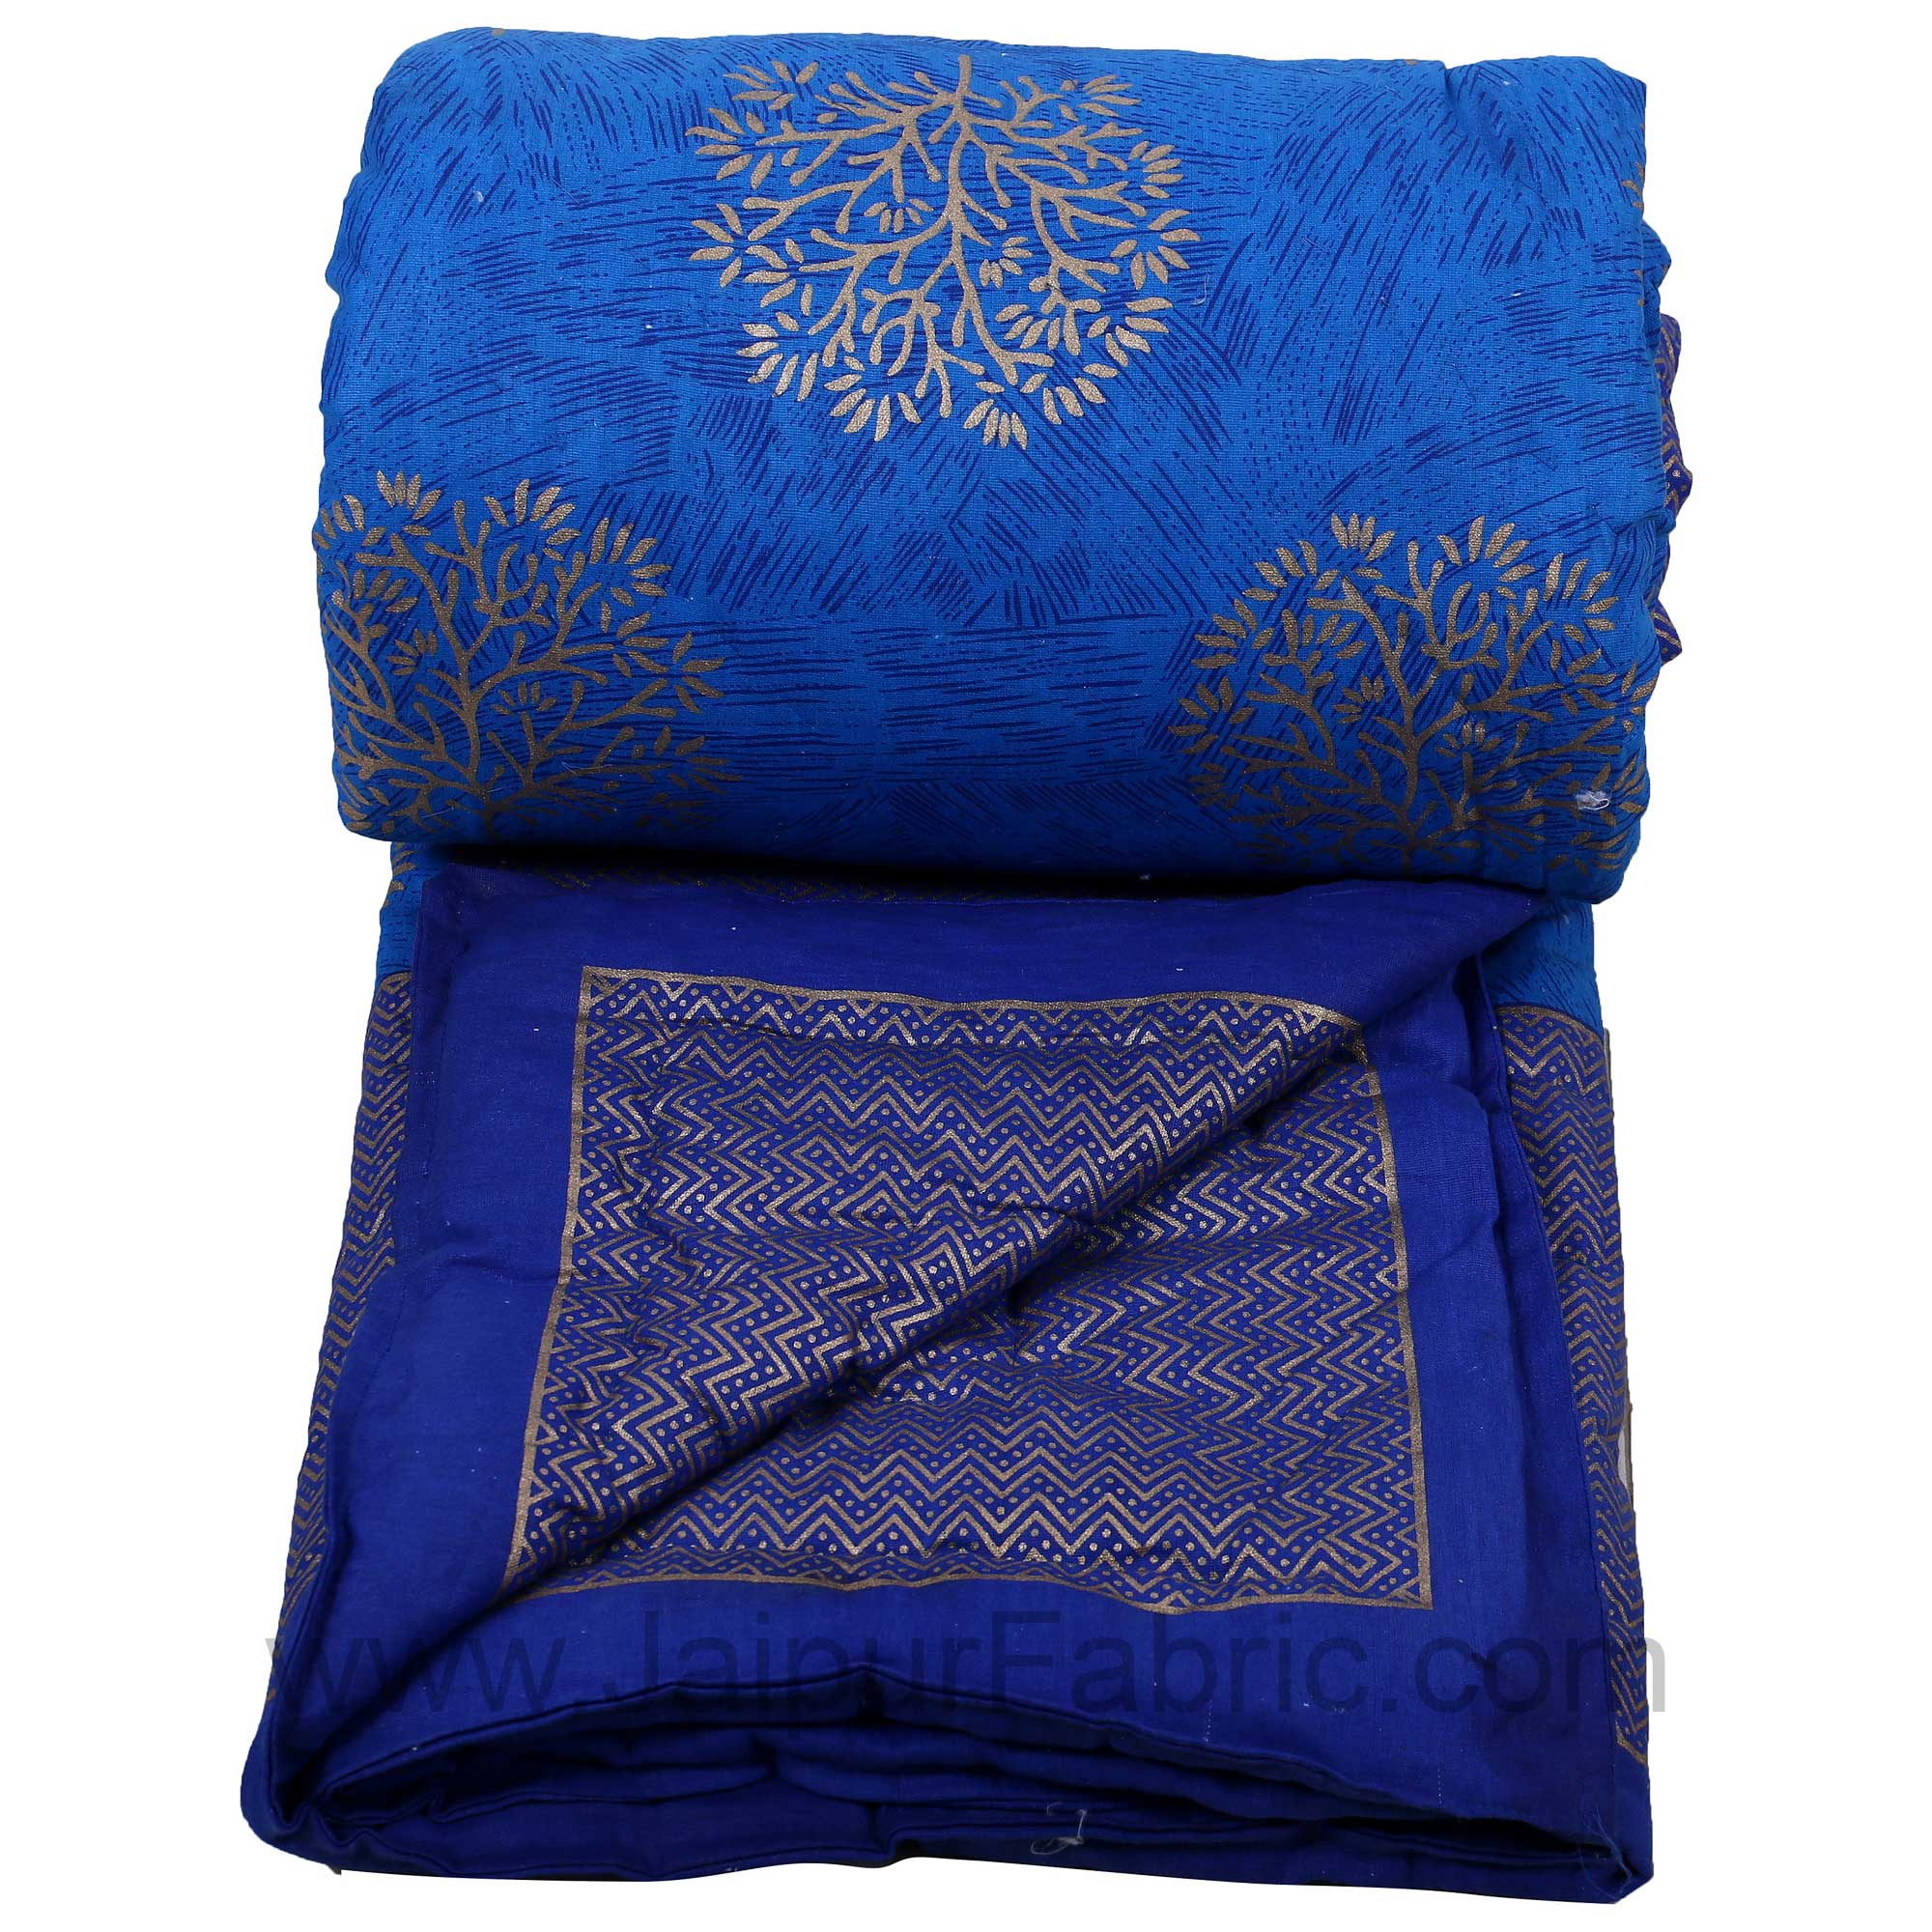 Jaipuri Printed Single Bed Razai Golden Blue And Sea Green With Leaf Pattern